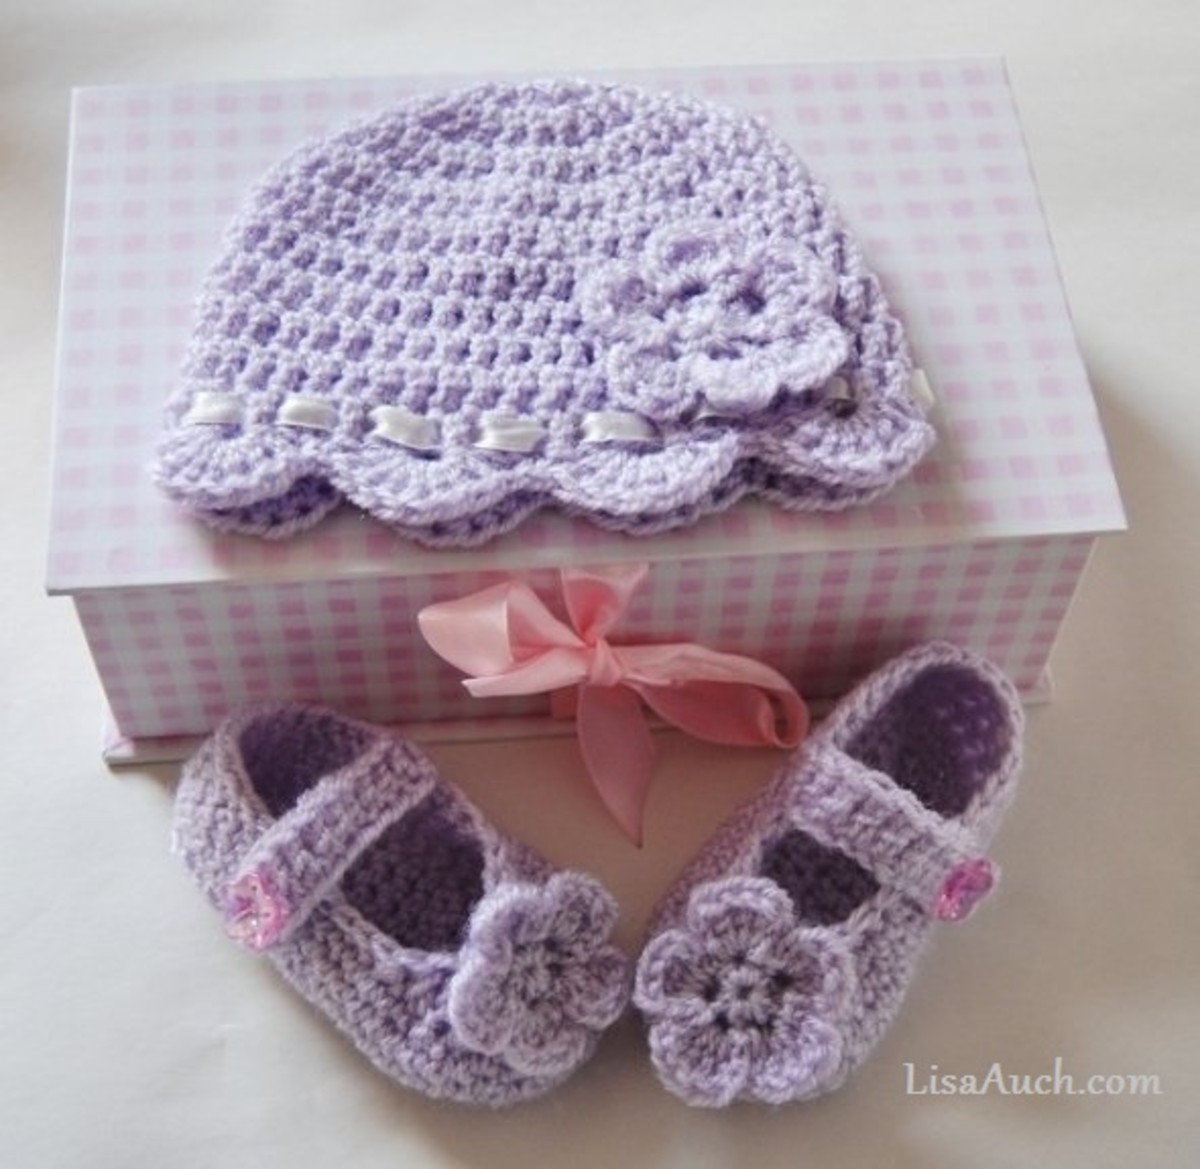 Learn How to Crochet and start making beautiful gifts today